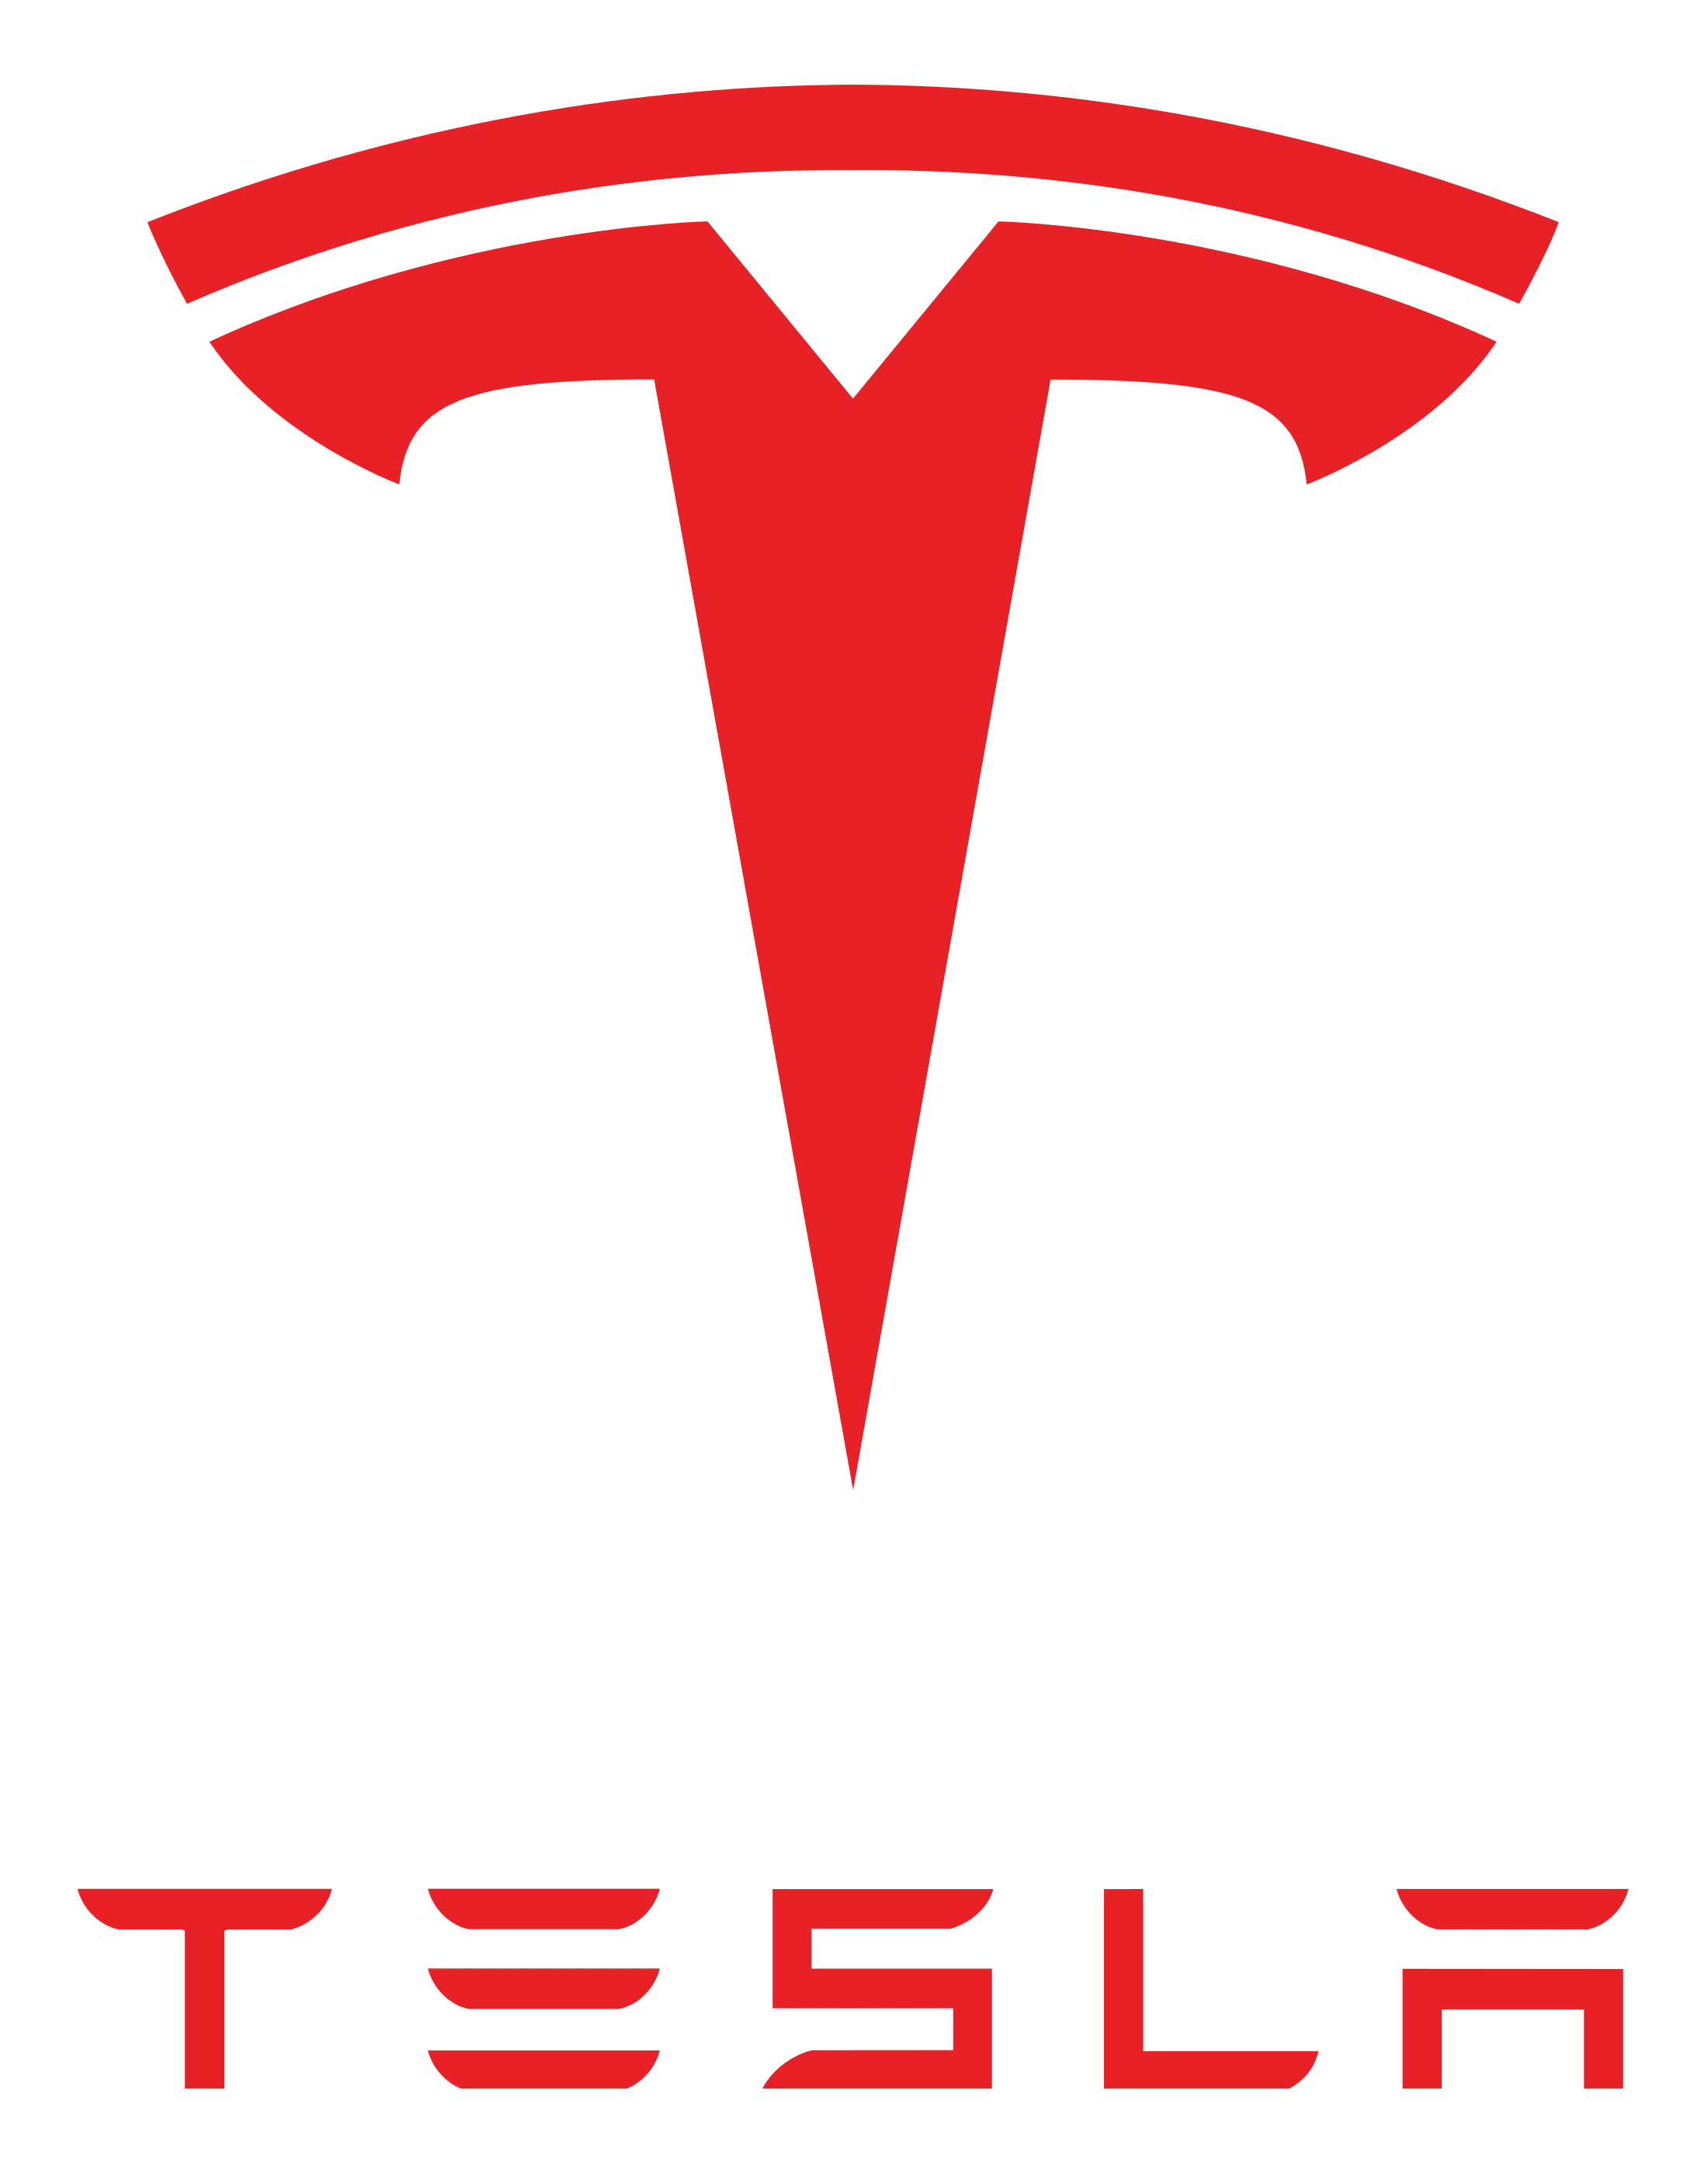 How to value Tesla stock?